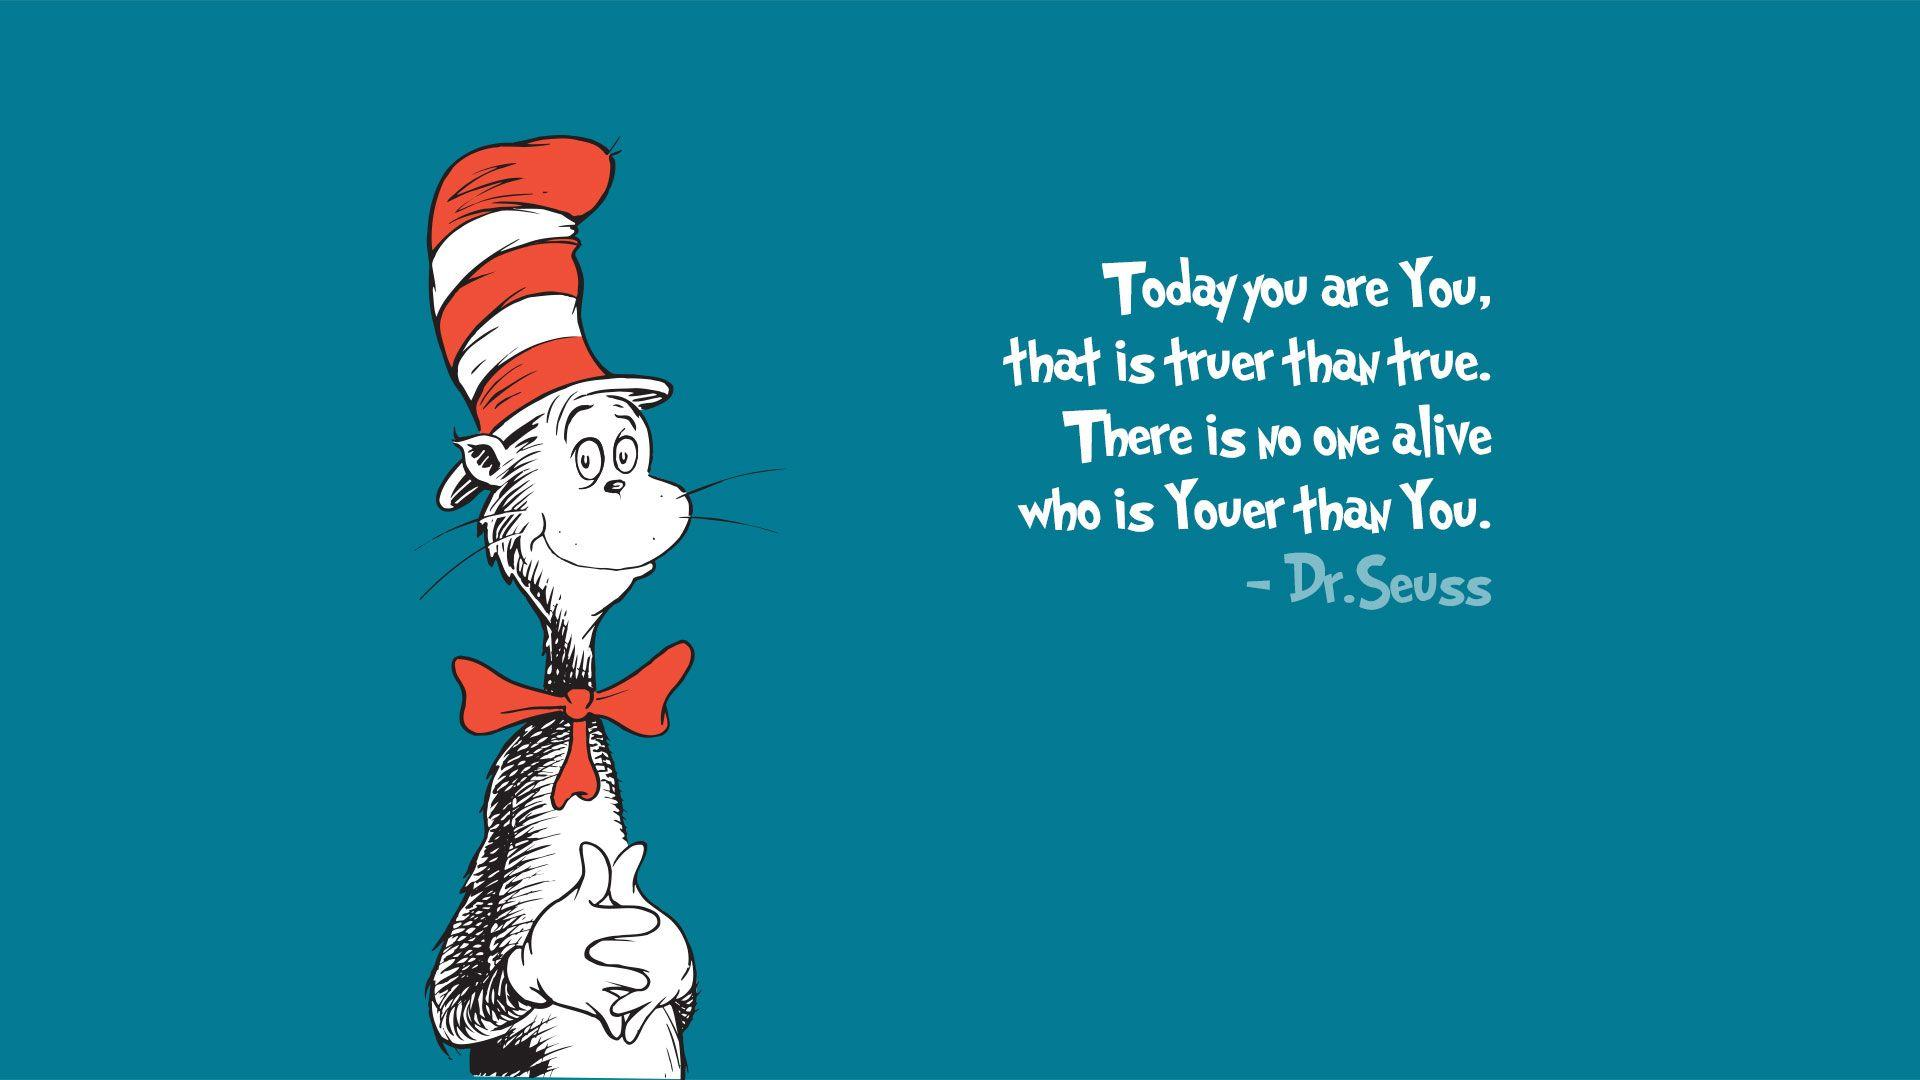 Dr. Seuss Wallpapers - Wallpaper Cave